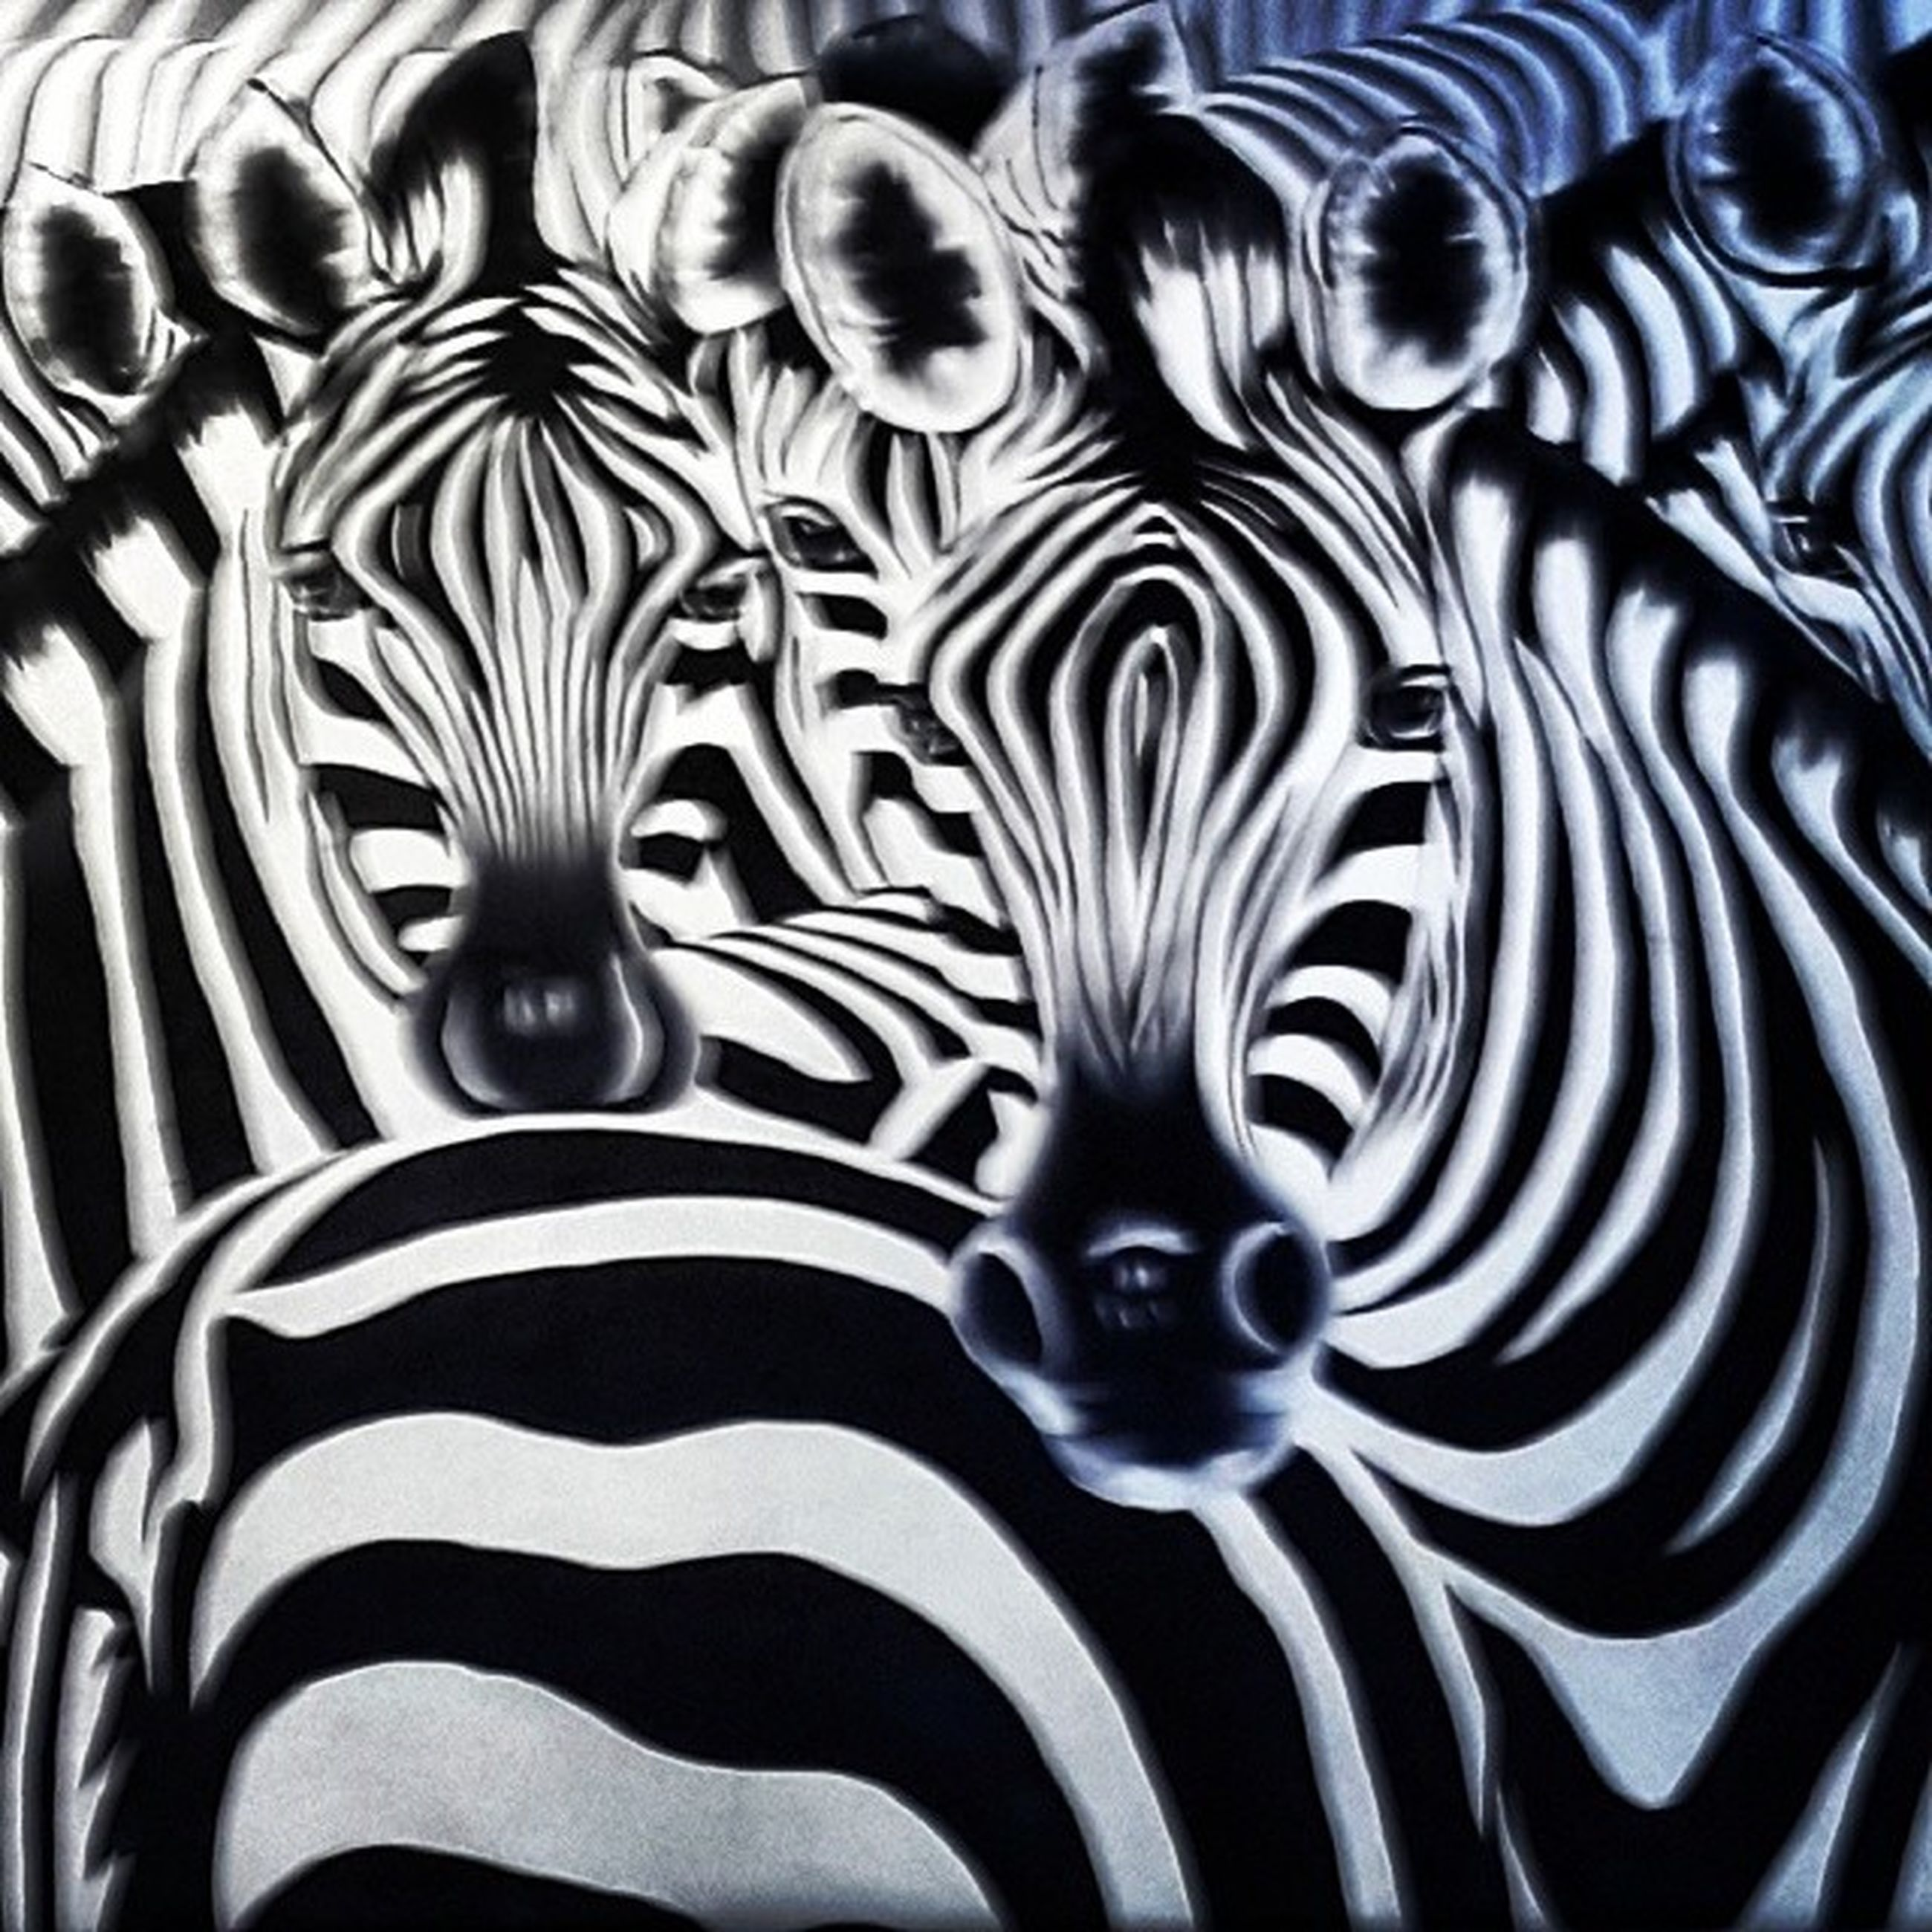 animal themes, pattern, zebra, striped, animals in the wild, animal markings, wildlife, design, natural pattern, one animal, close-up, no people, art and craft, creativity, outdoors, safari animals, art, day, mammal, nature